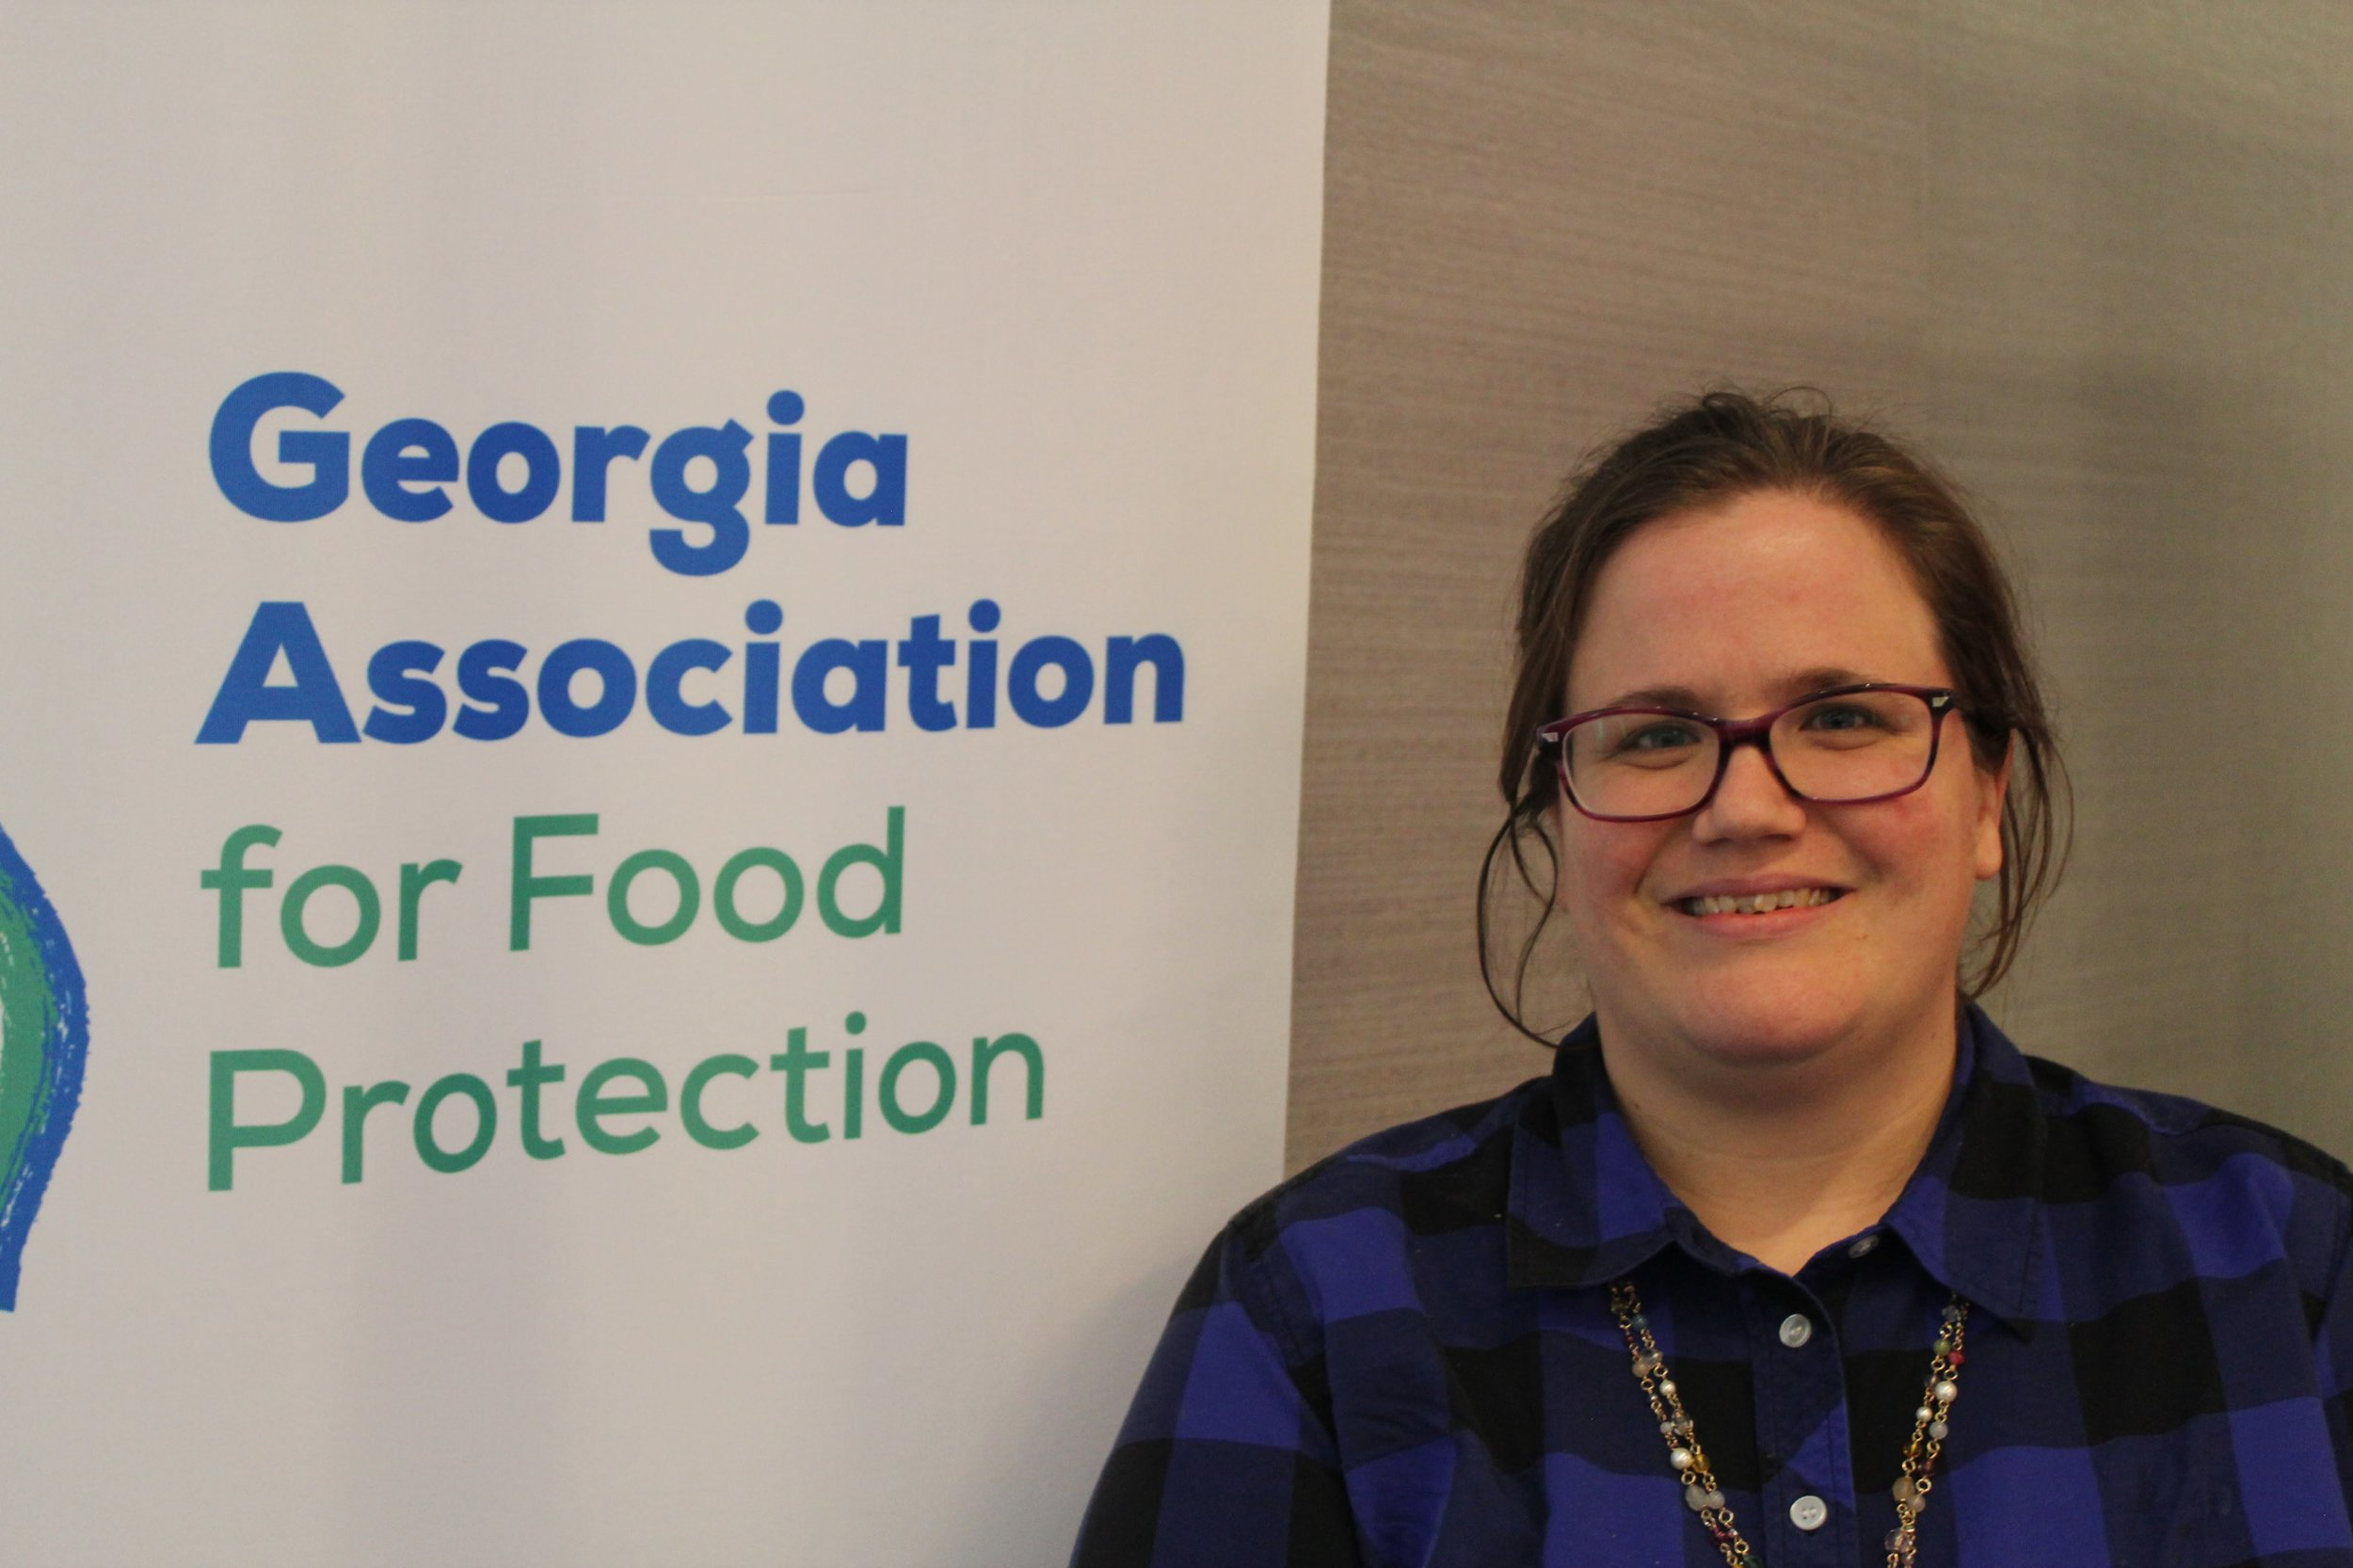 Jessica Chen, Vice-President - Jessica Chen (Centers for Disease Control and Prevention), is currently the Georgia Association for Food Protection's Vice-President. Jessica currently chairs the Program Committee and is responsible for planning the biannual educational meetings.Contact: jlc232@gmail.com